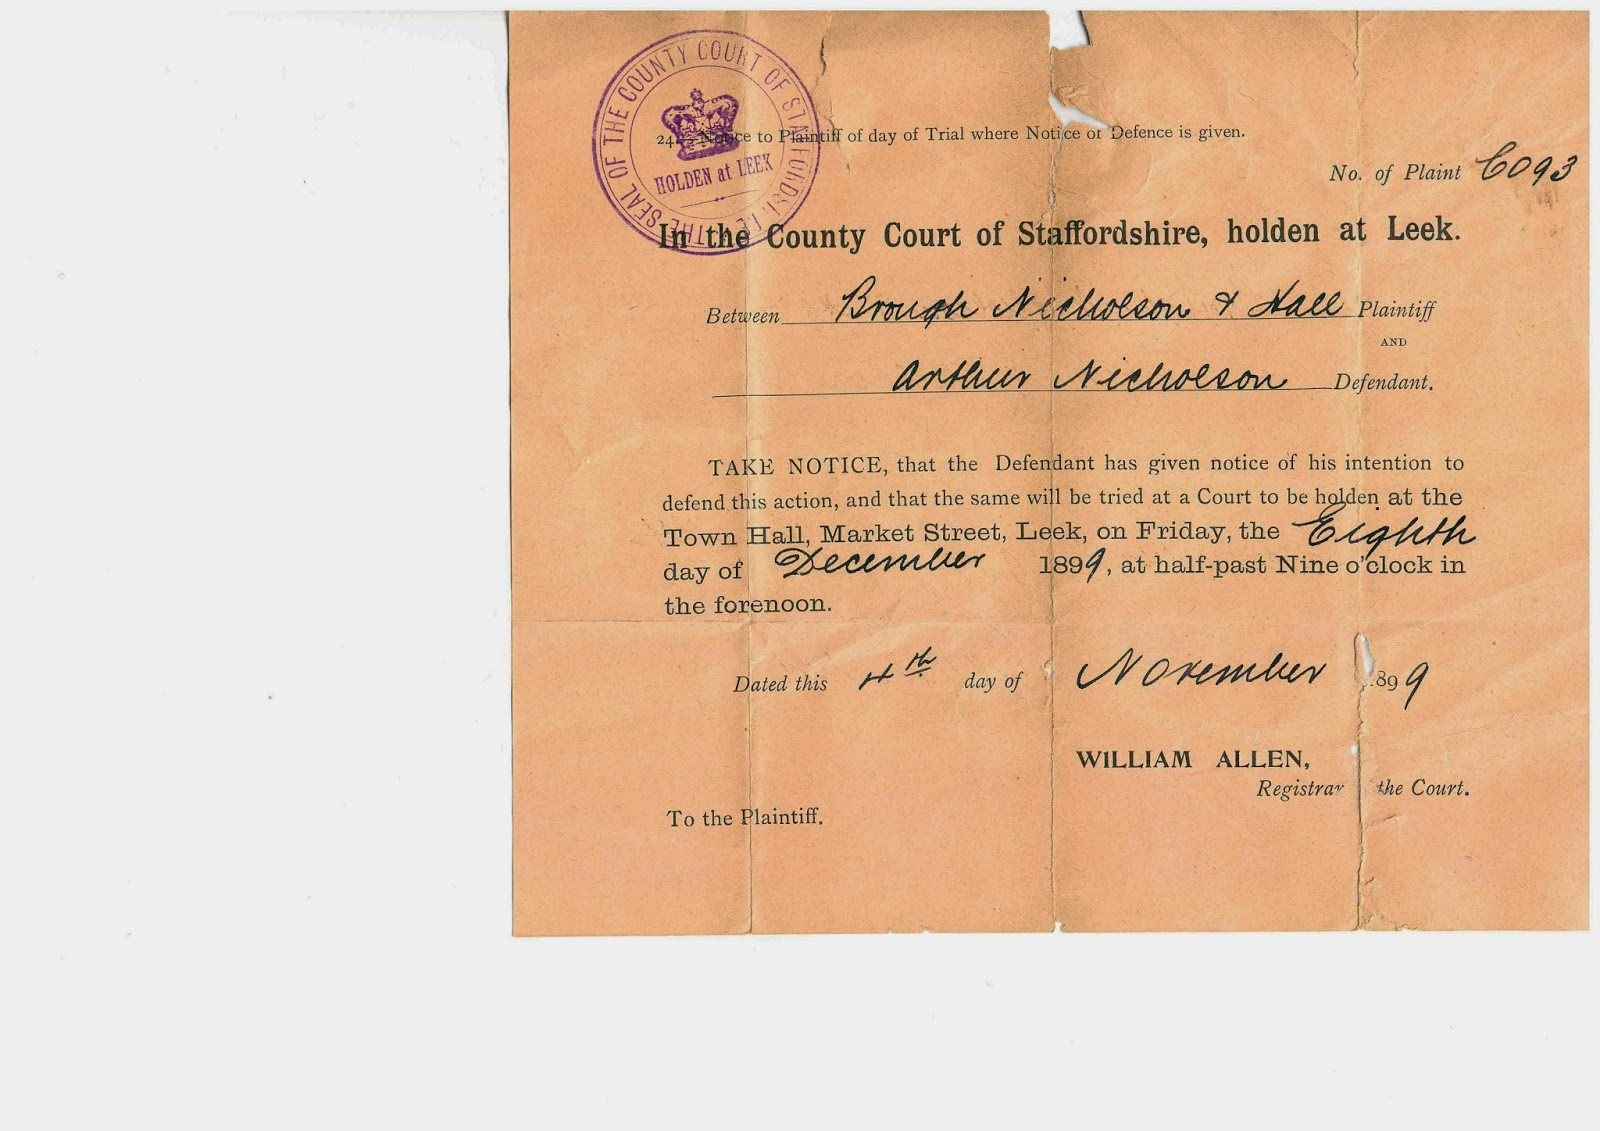 Leek County Court, Notice of Defended Action, Brough Nicholson & Hall Versus Arthur Nicholson, 4th November 1899